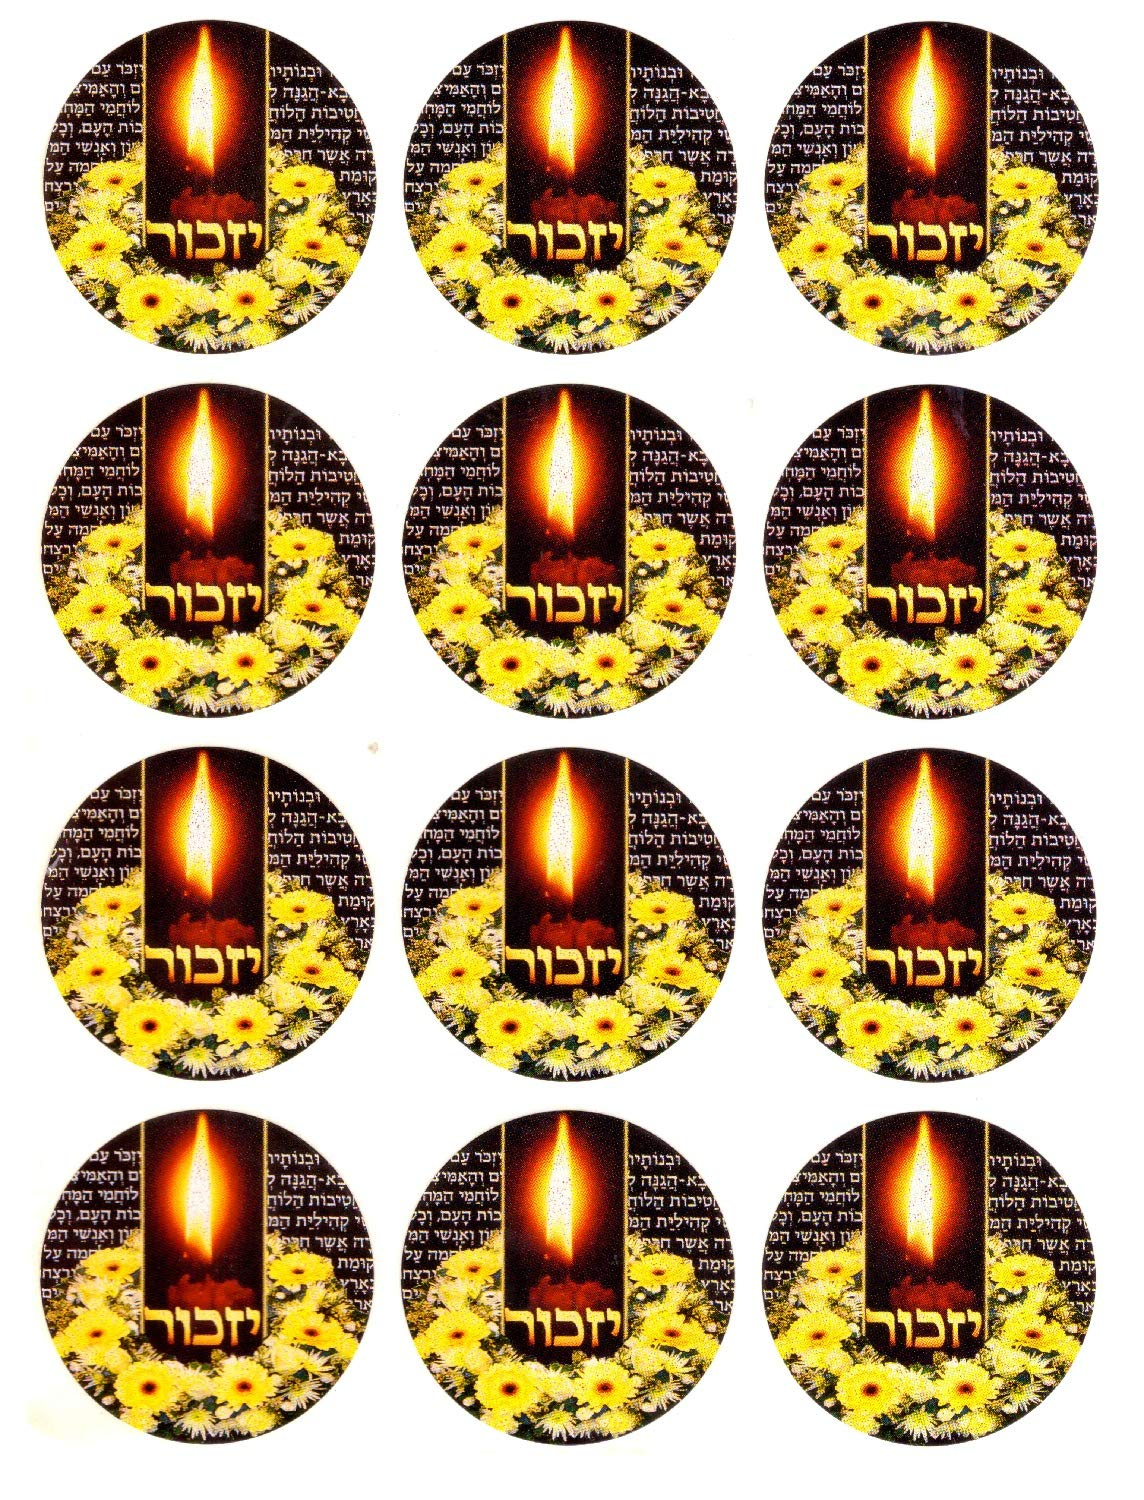 Yizkor Stickers Memorial Stickers for Israeli Soldiers Killed in The war 12 Stickers Per Sheet X 6 Sheet = 36 Yizkor Stickers Memorial Stickers for Israeli Soldiers Killed in The war 12 Stickers Per Sheet X 6 Sheet = 36 Yizkor Stickers